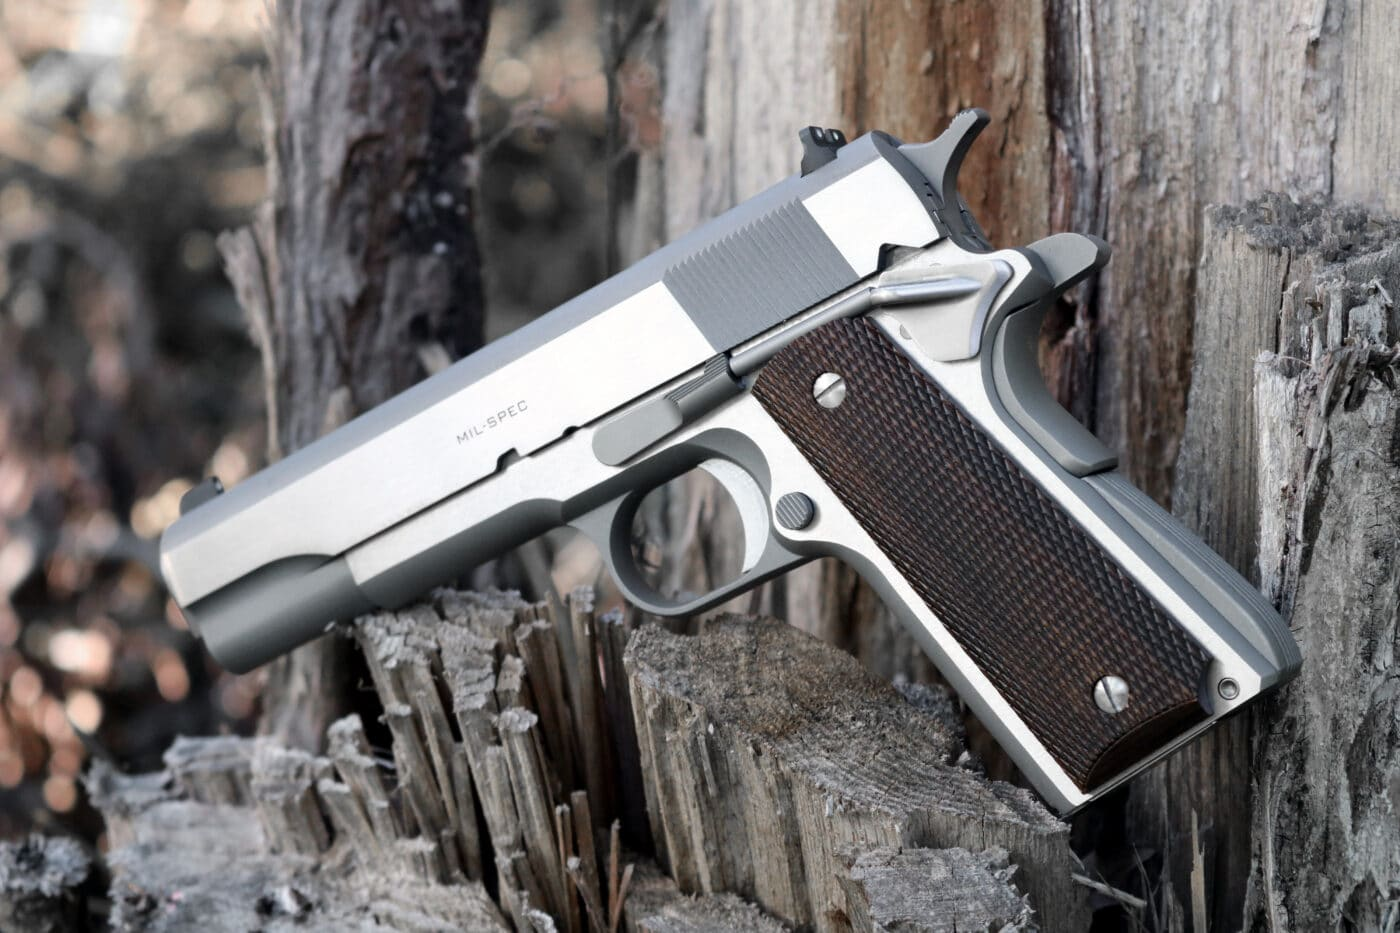 Side view of the Springfield Armory Stainless Steel Mil-Spec 1911